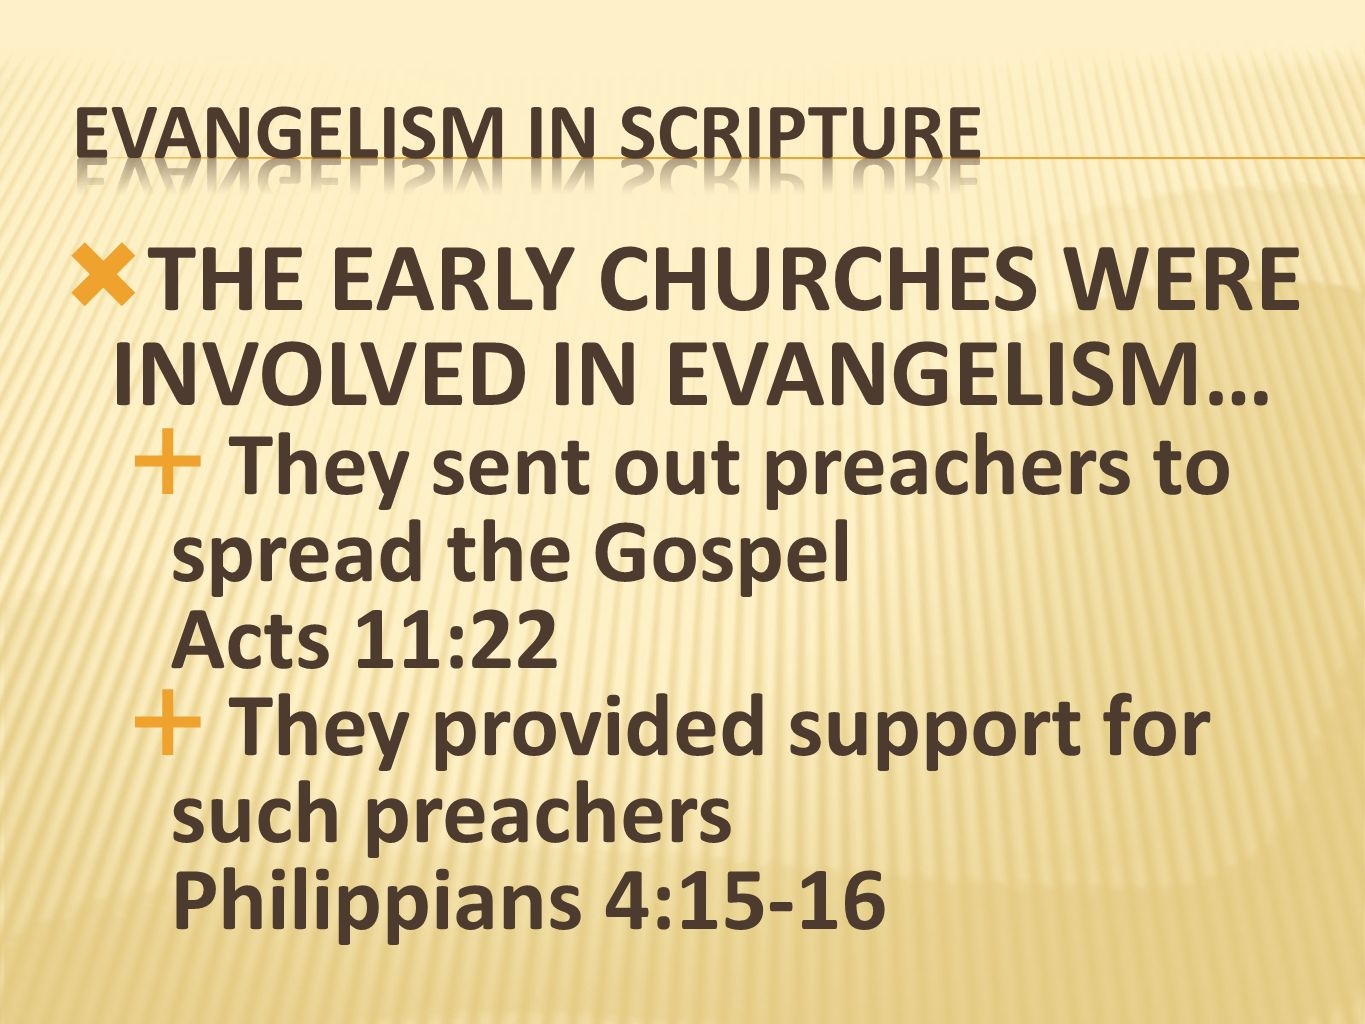 THE EARLY CHURCHES WERE INVOLVED IN EVANGELISM…